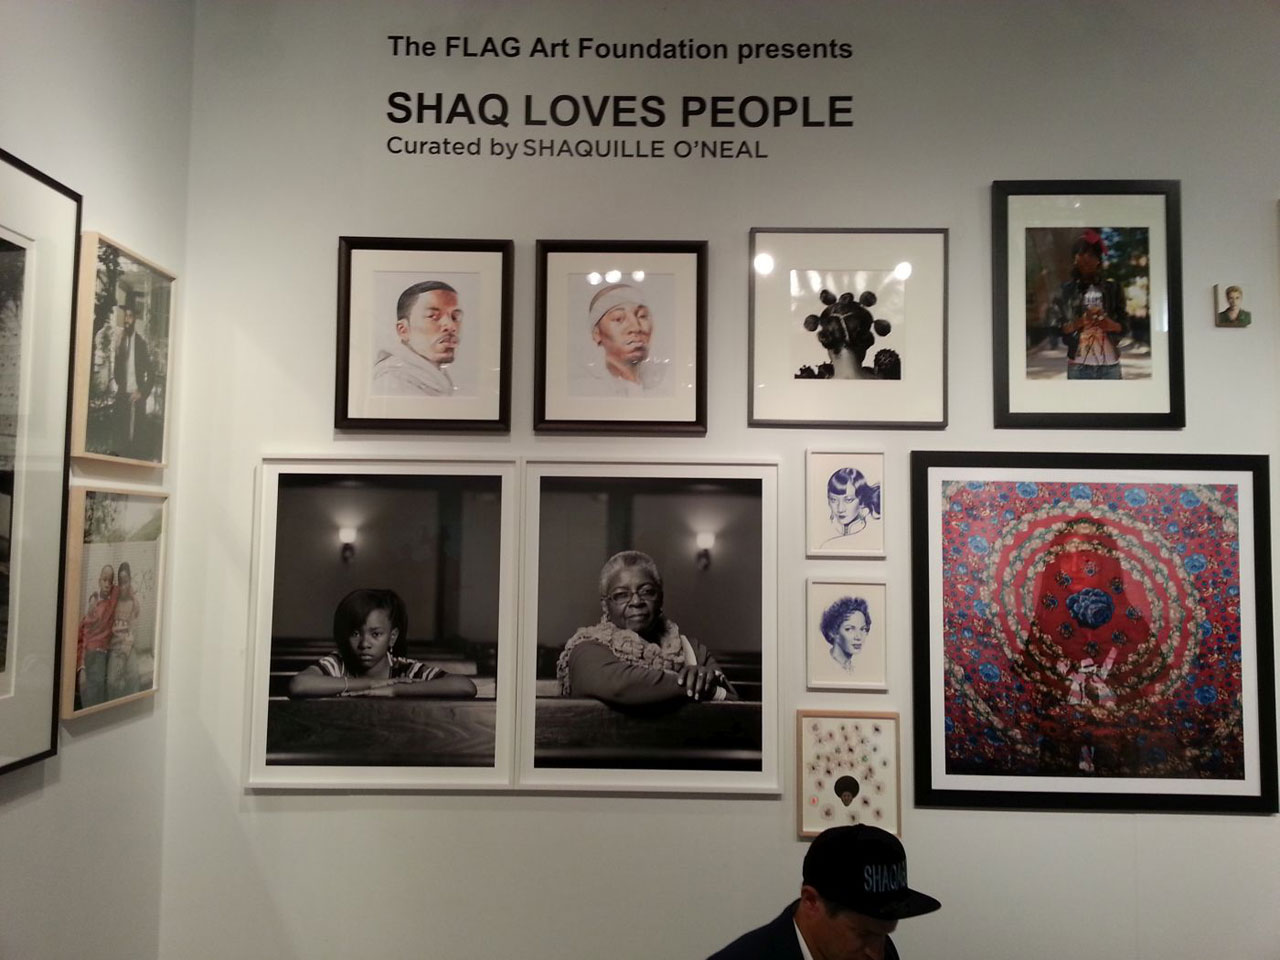 Shaquille O'Neal's booth